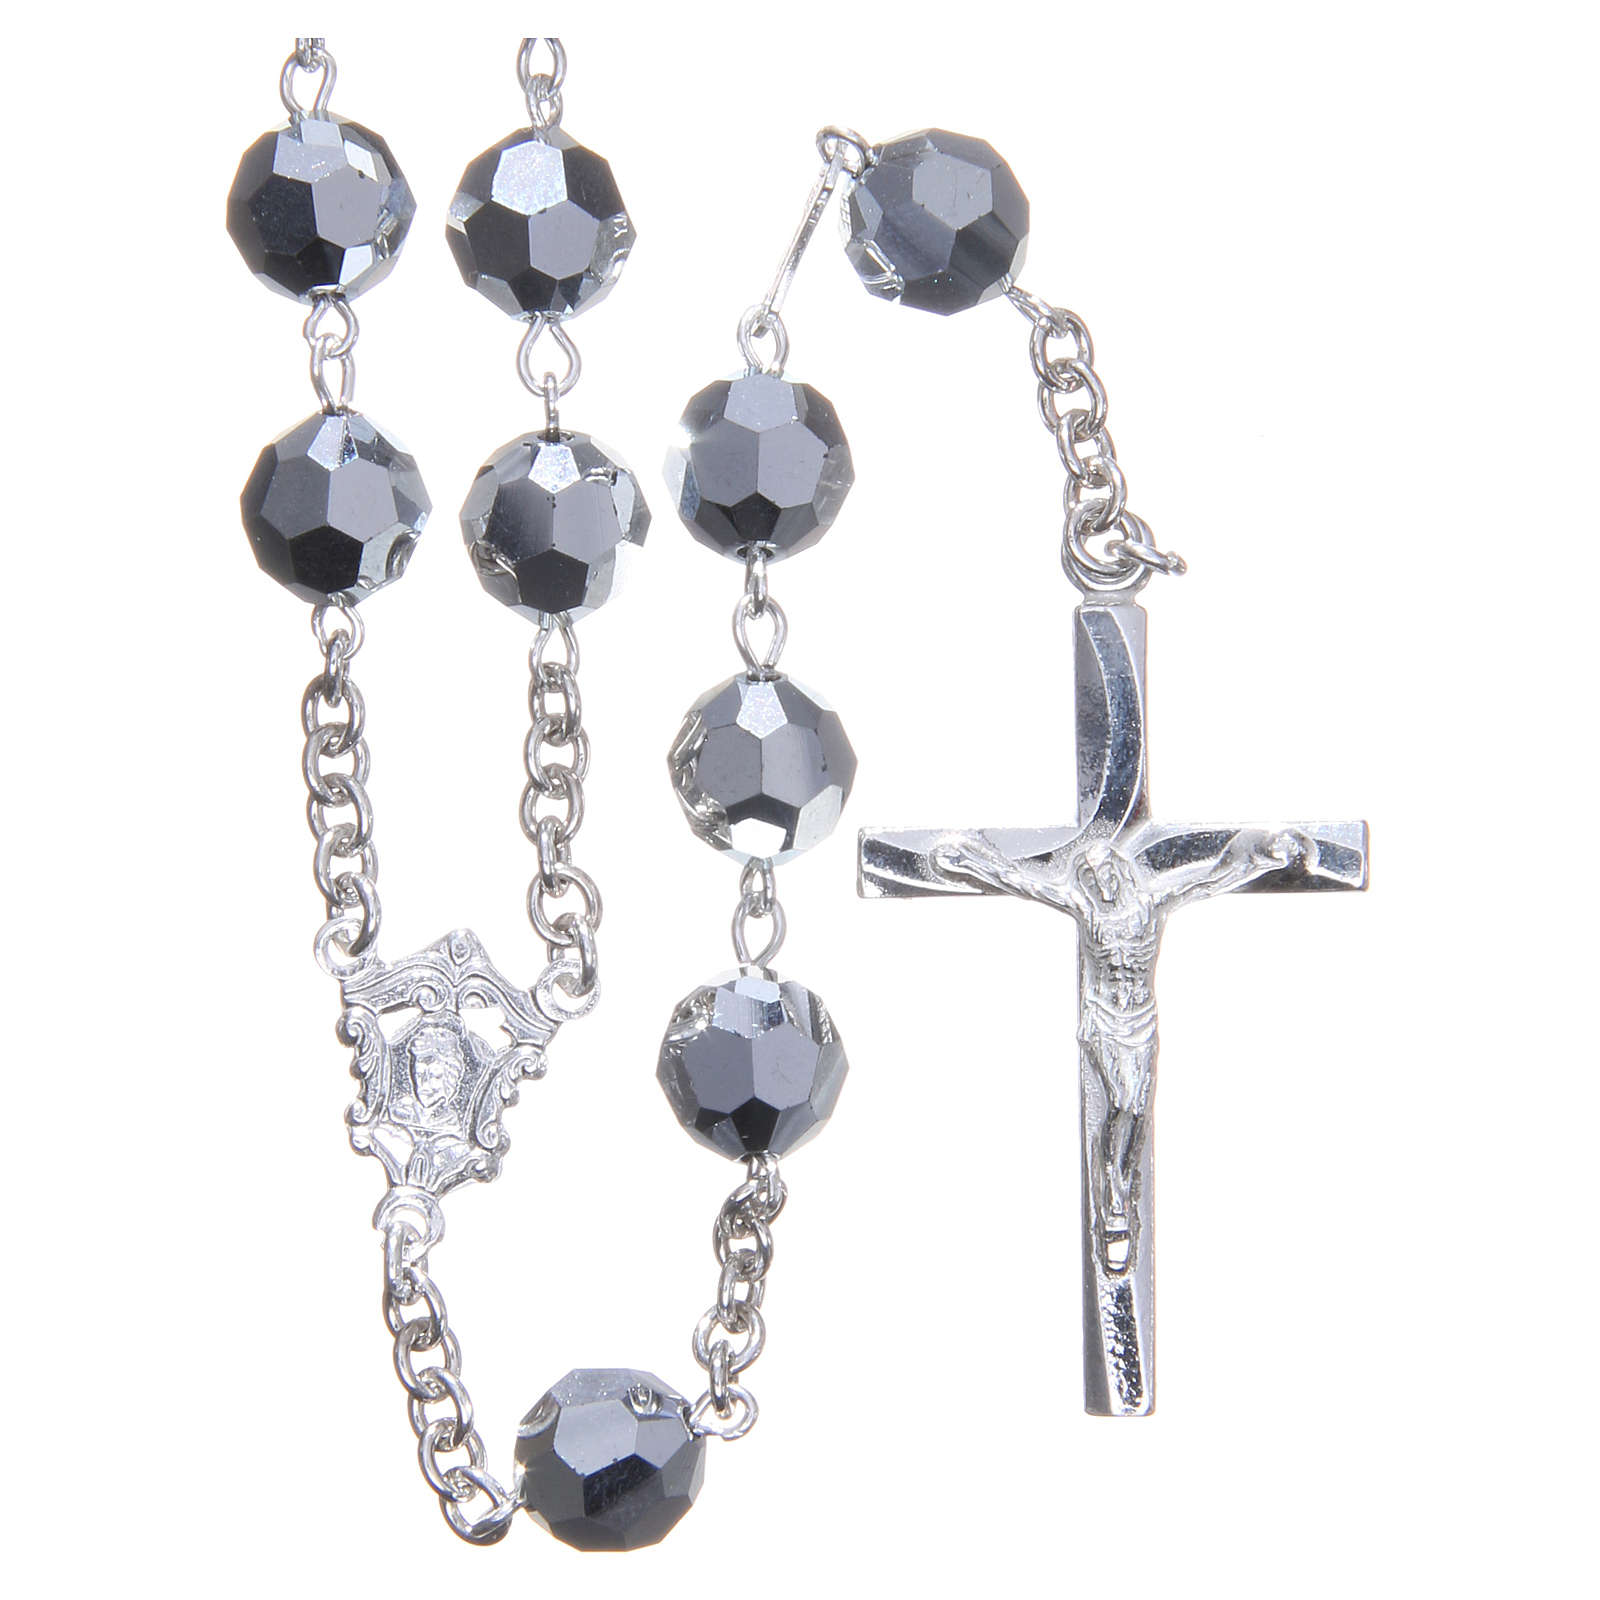 Rosary in 800 silver and metallic Swarowski crystal grains measuring 8mm 4